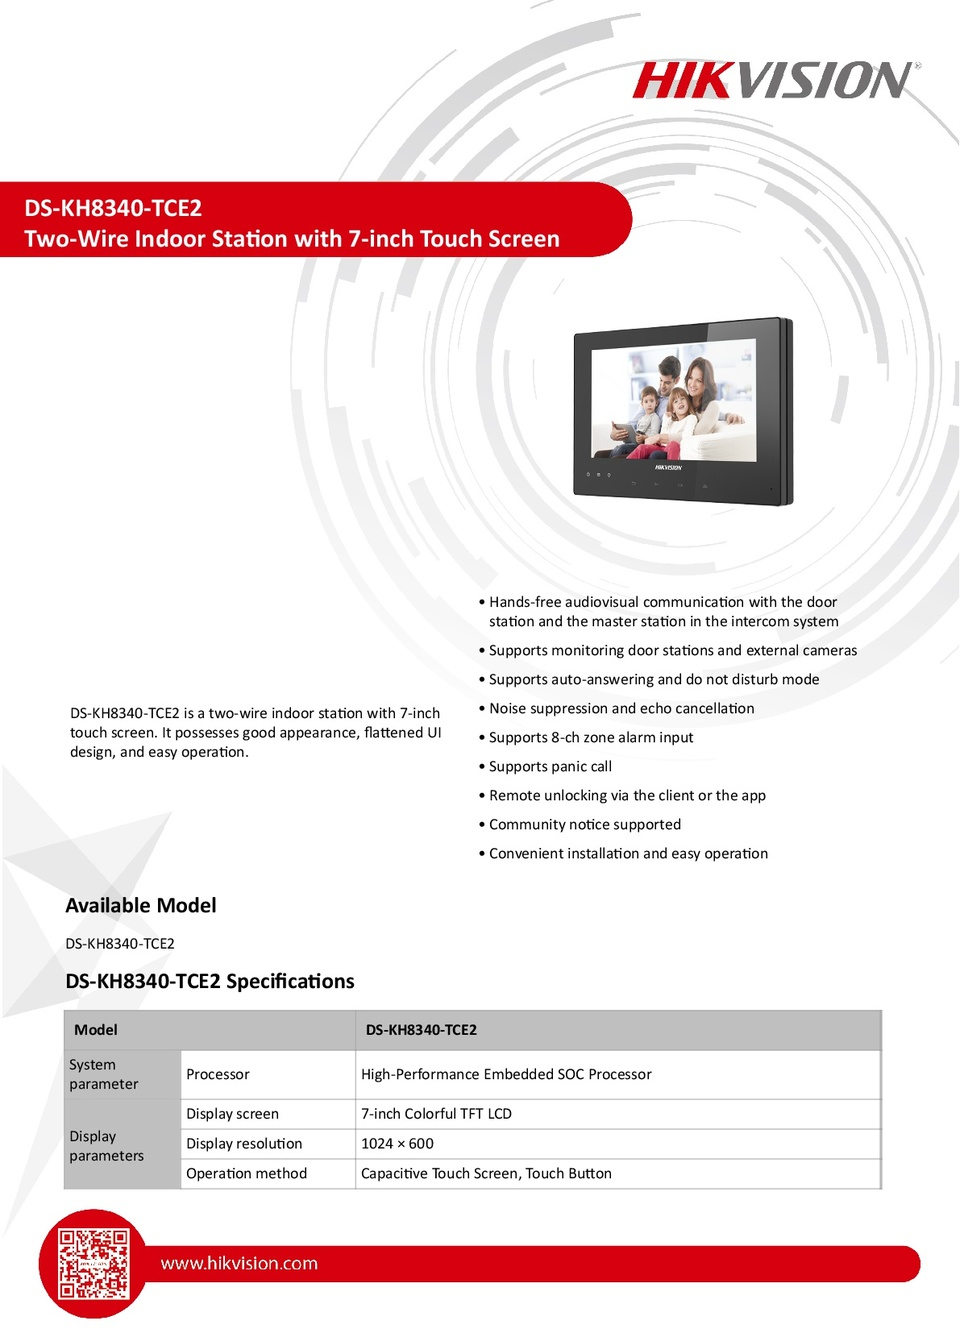 Hikvision Ds Kh8340 Tce2 2 Wire Indoor Station Digitalsi Series Magnetic Lock Wiring Instructions 0